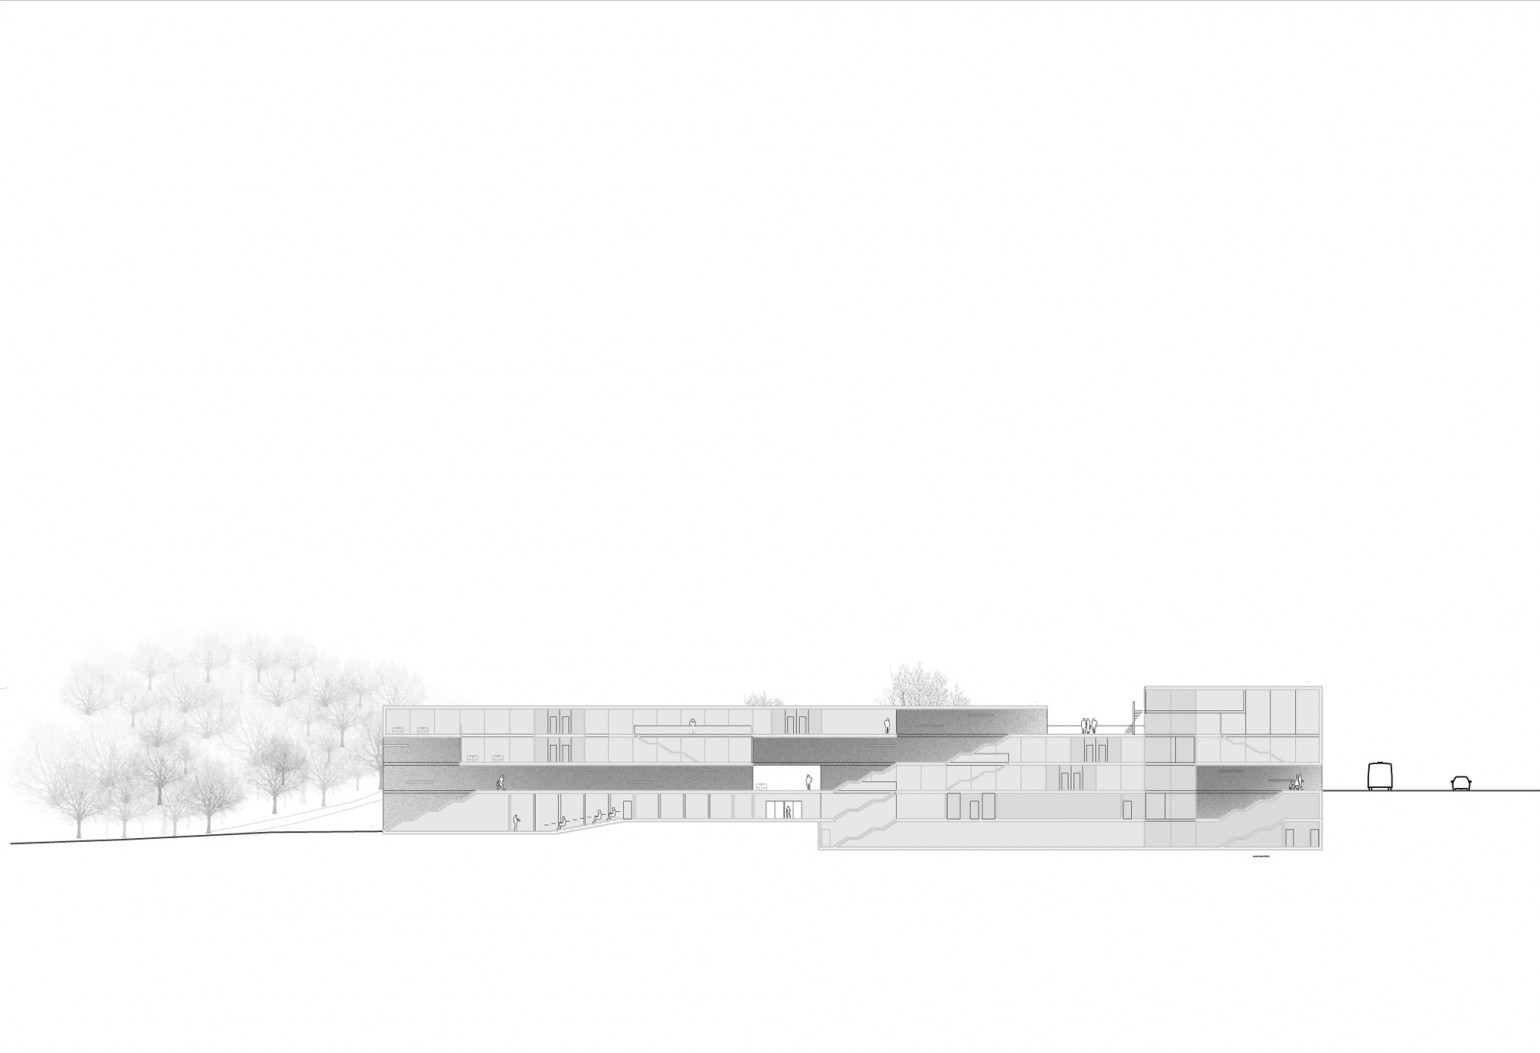 complexe_gare_sud_sierre_meyer_architecture_sion_04